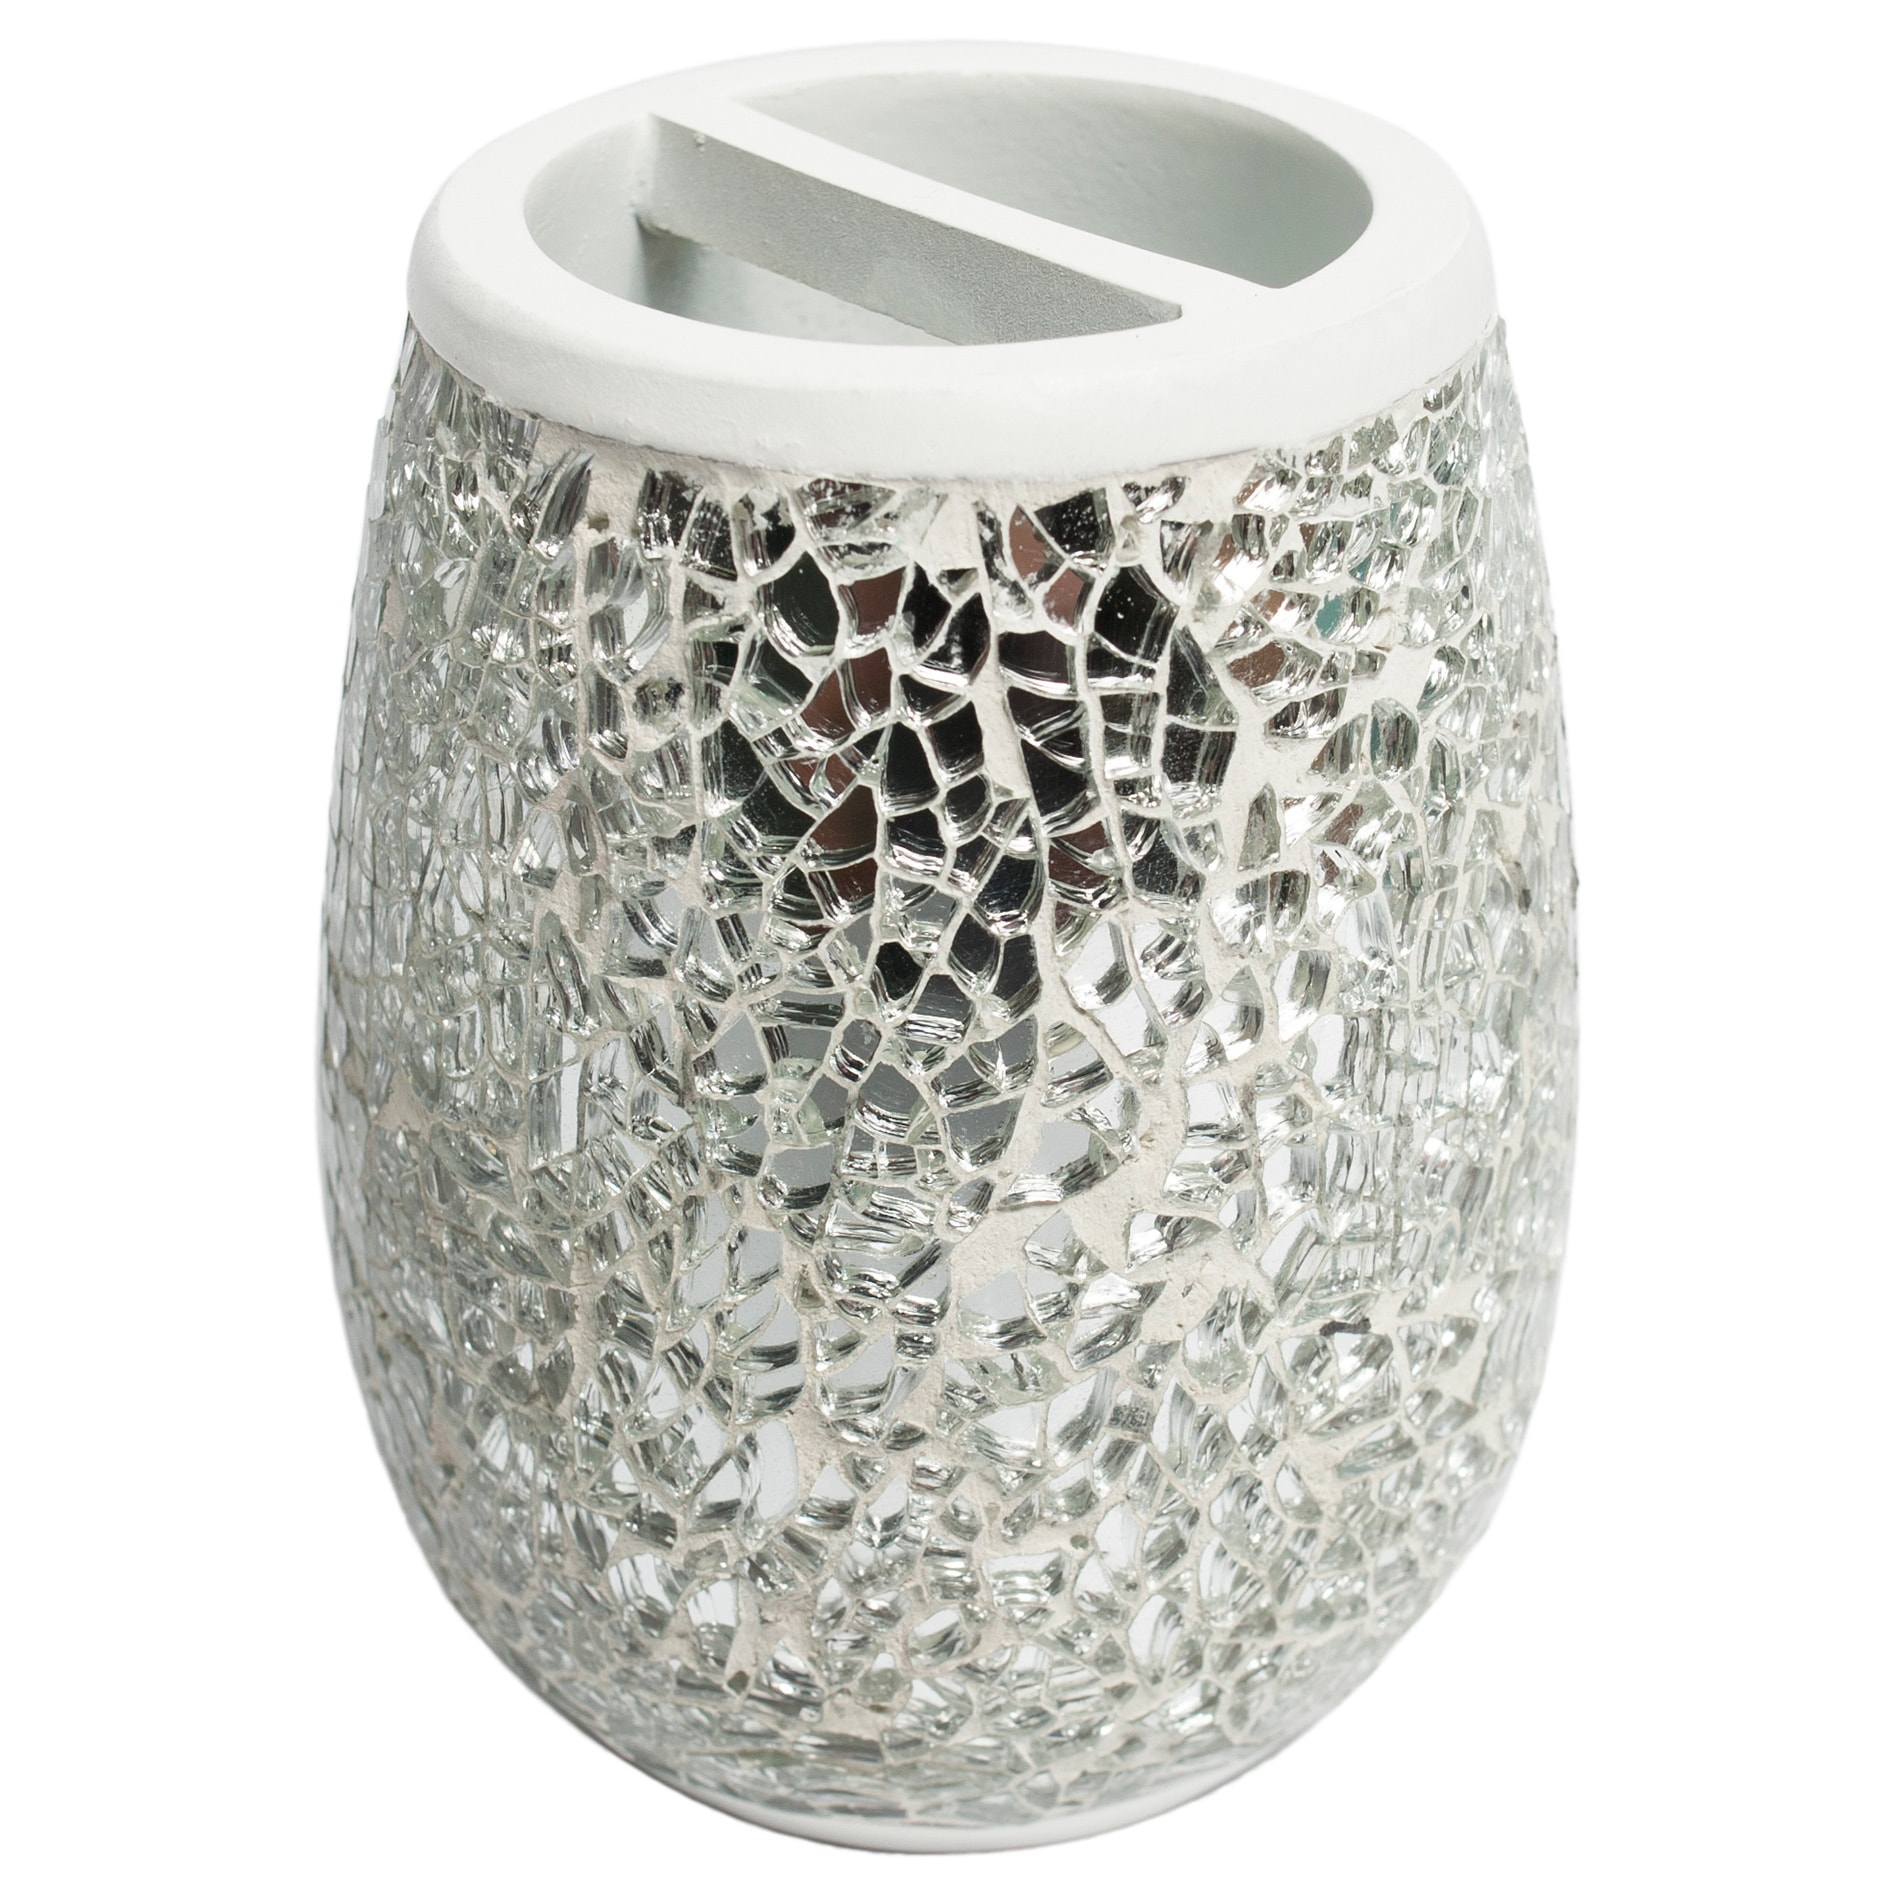 Silver cracked glass and ivory hand crafted bath accessory silver cracked glass and ivory hand crafted bath accessory collection free shipping on orders over 45 overstock 17856322 reviewsmspy